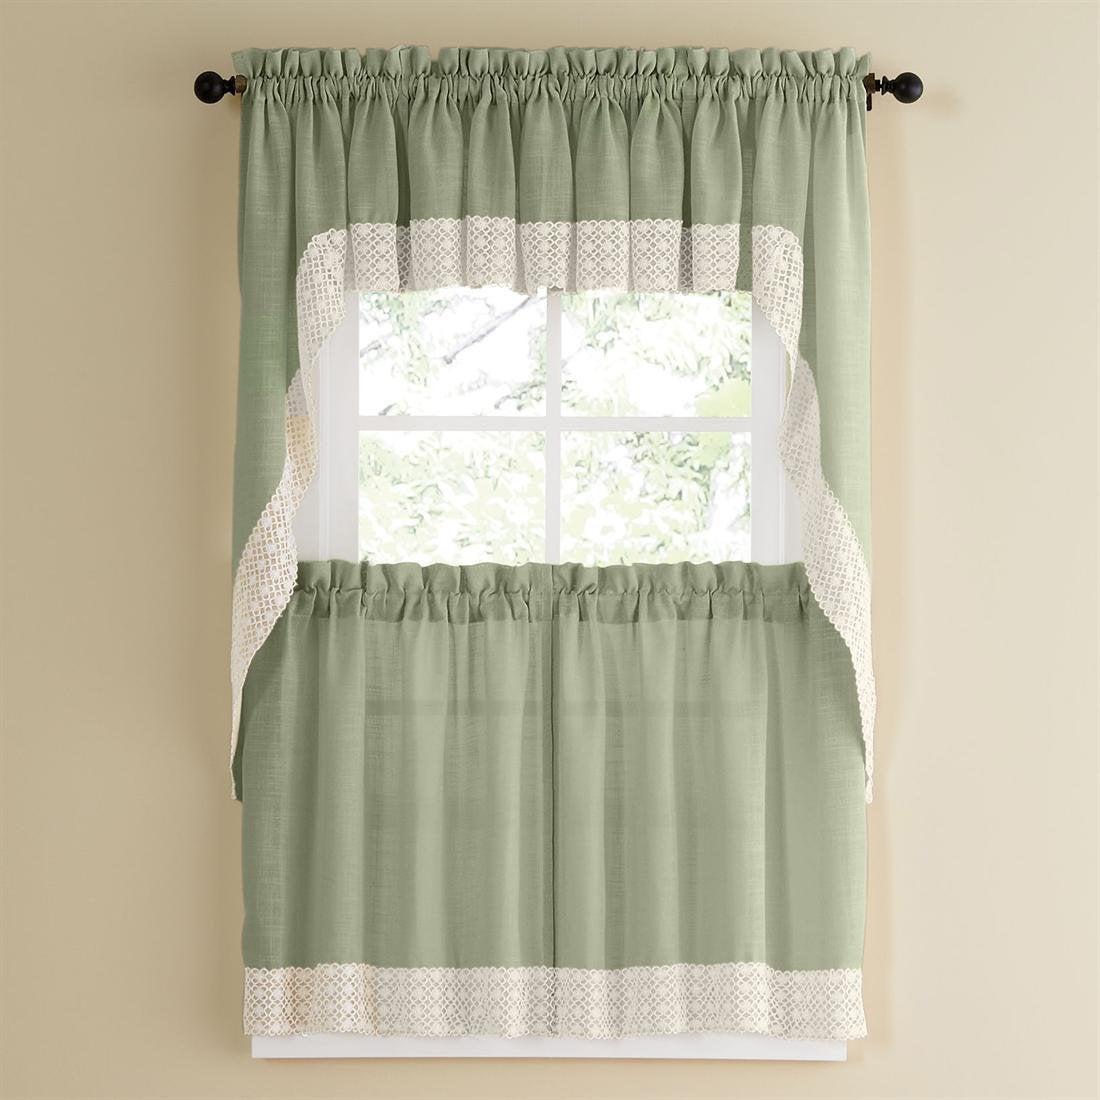 Sage Country Style Kitchen Curtains with White Daisy Lace...